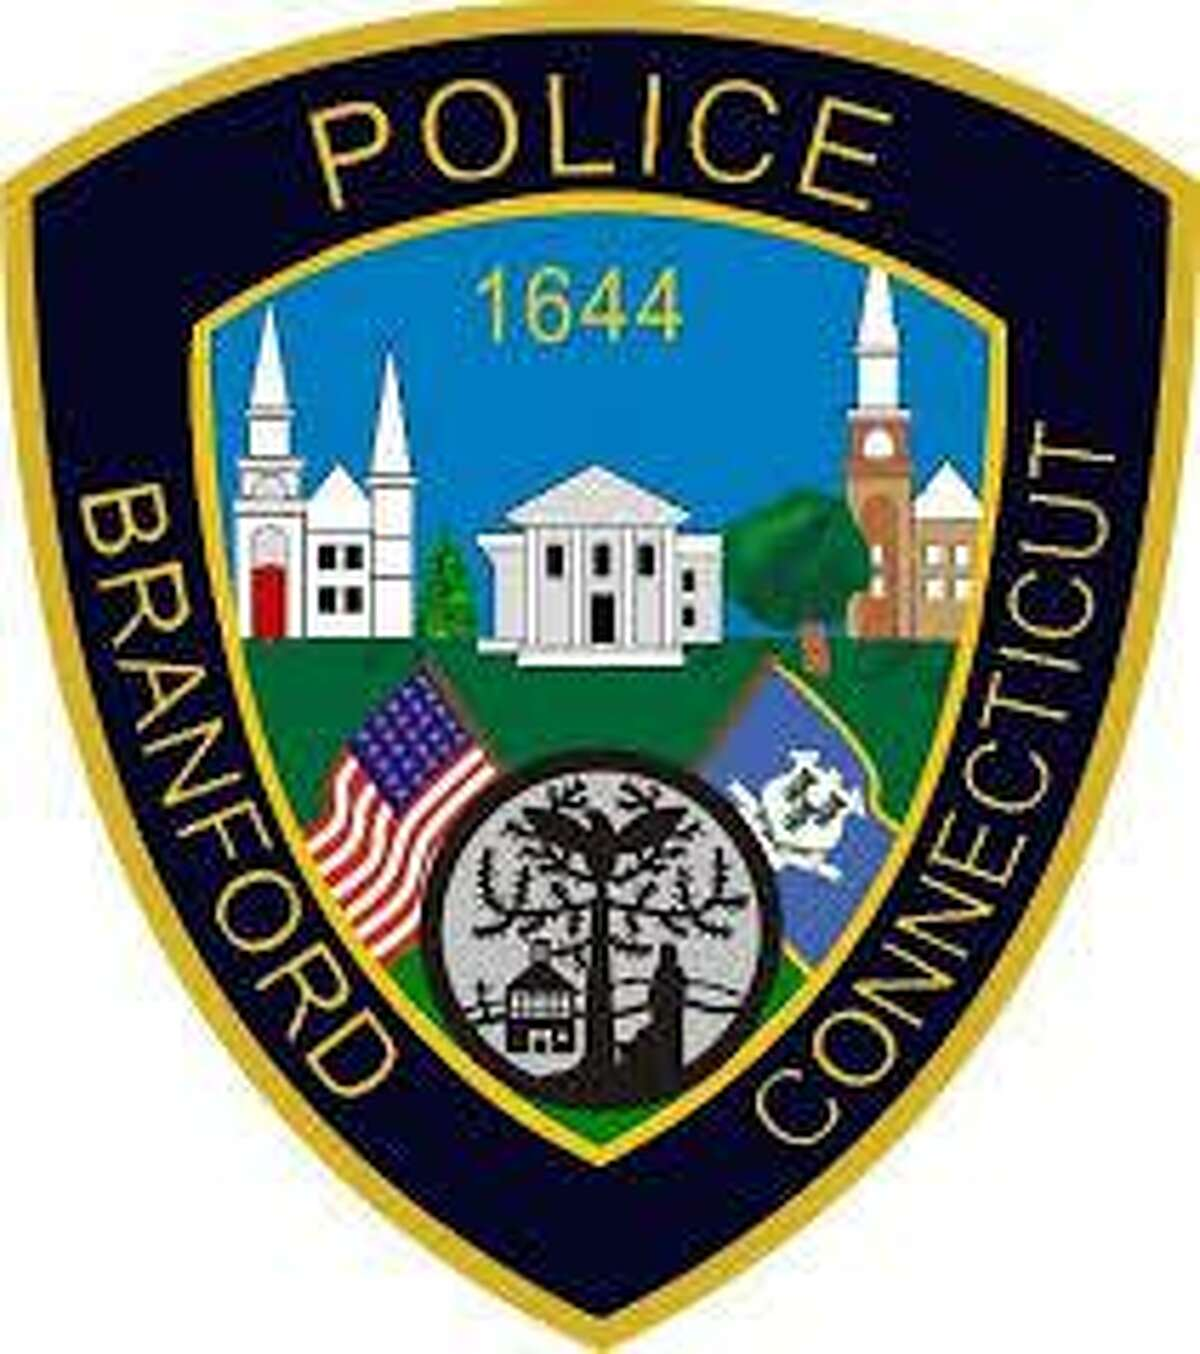 Branford Police Department patch.